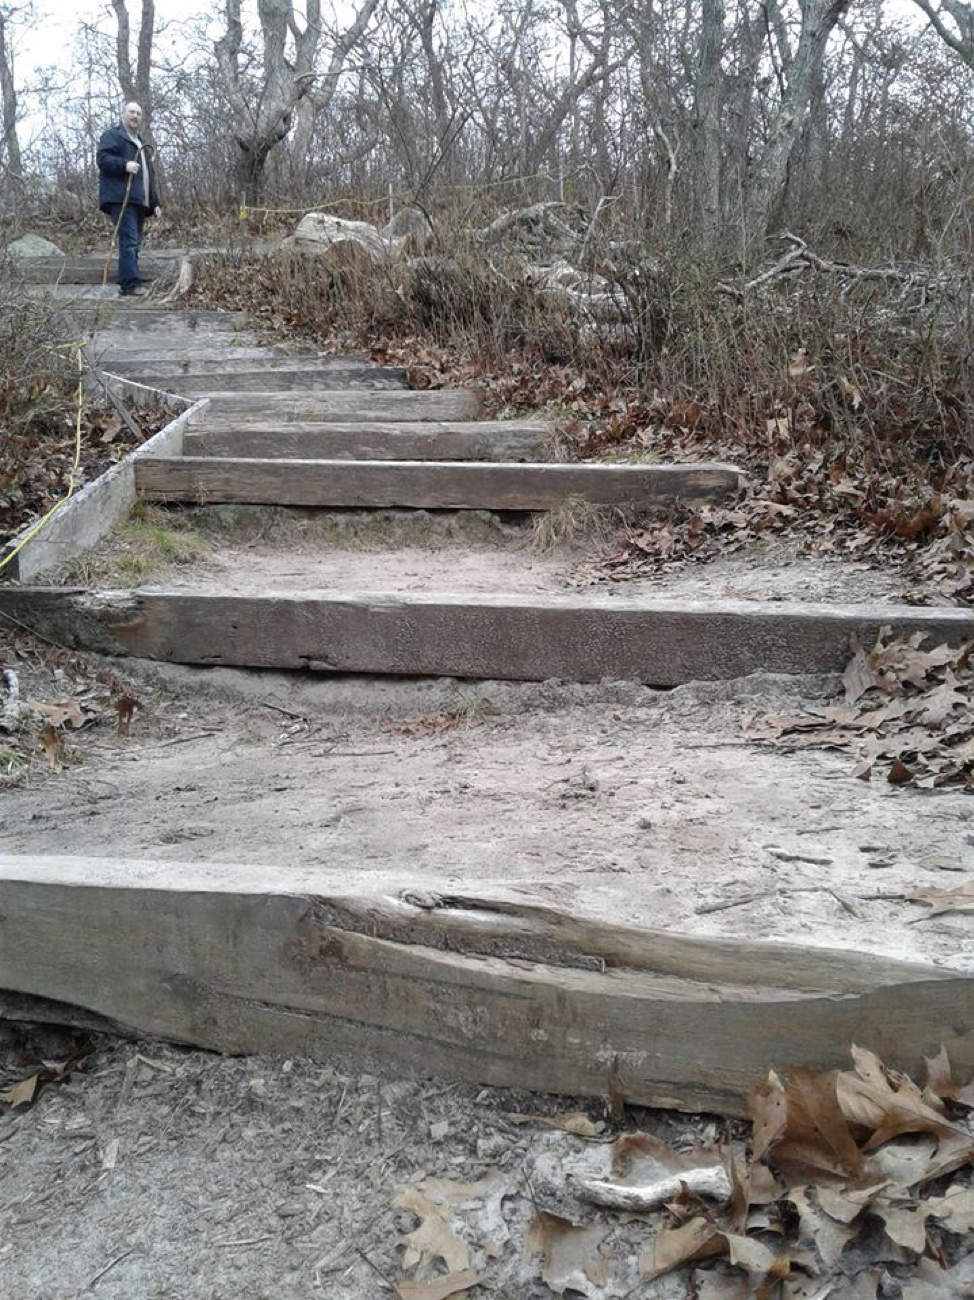 One of the many sets of stairs on this trail - at the top, my husband Matt